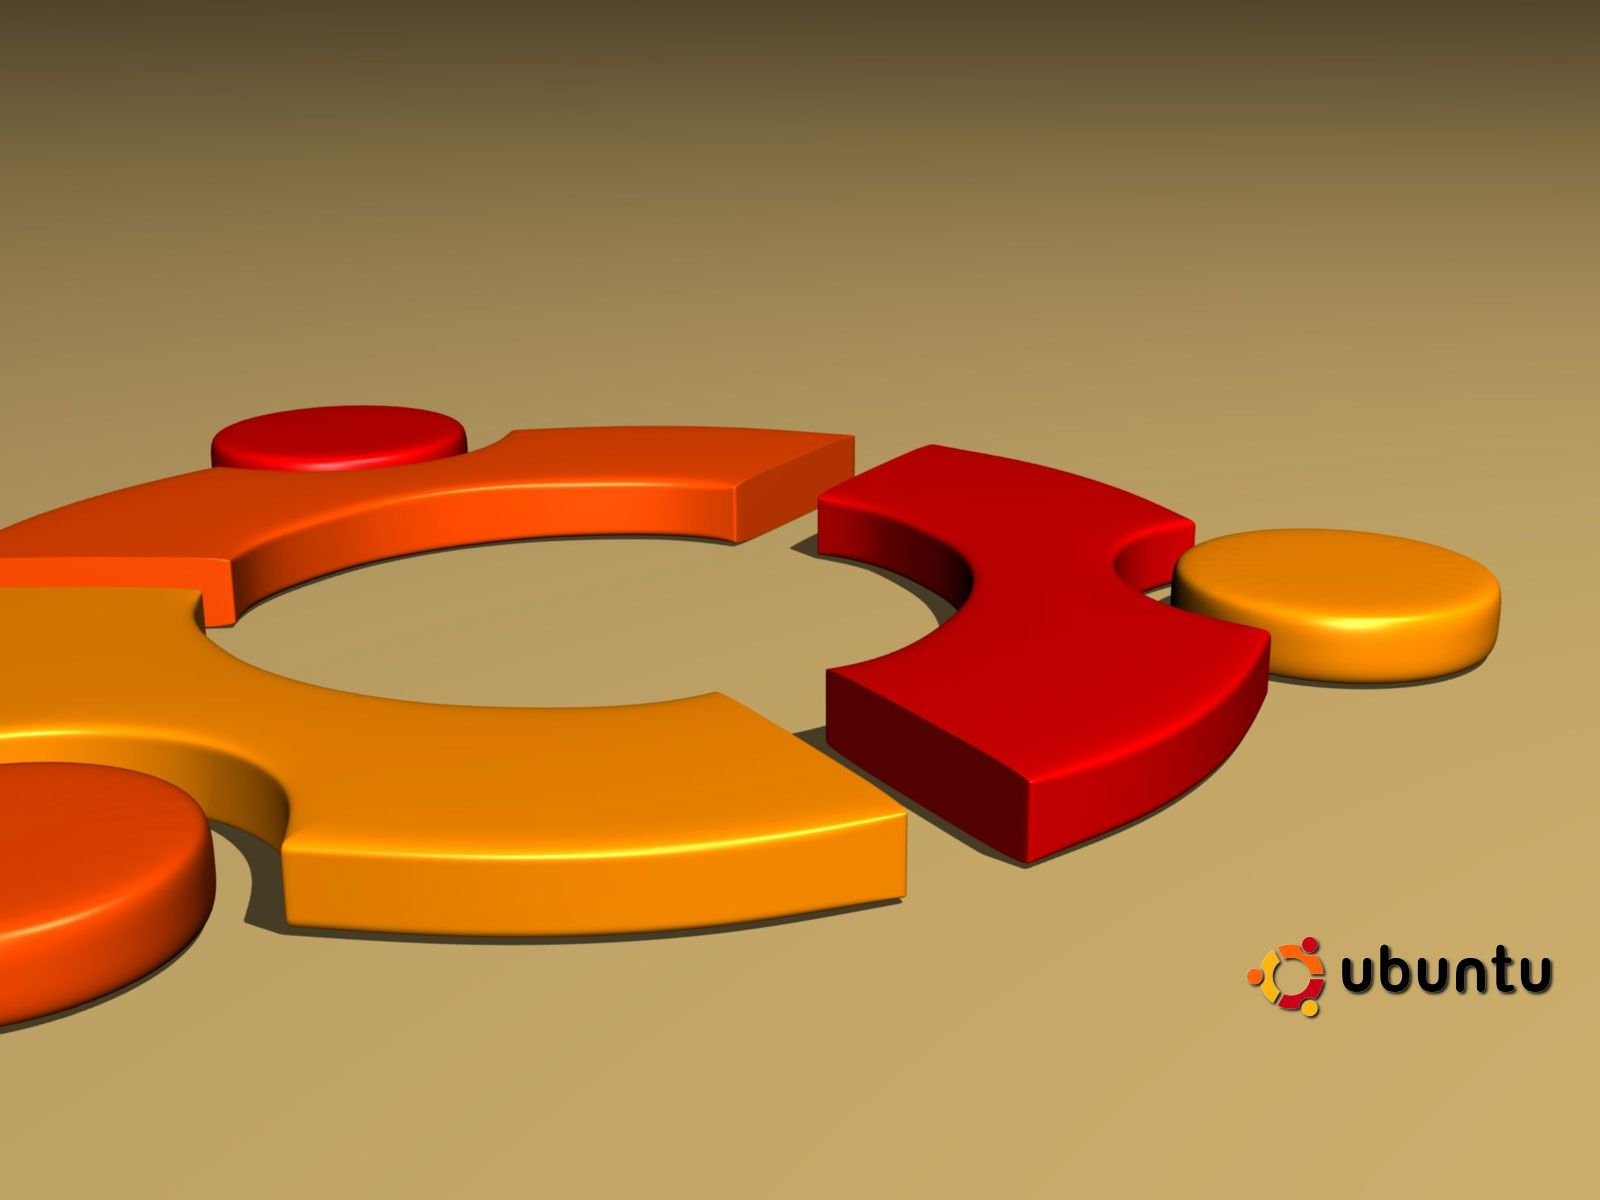 ubuntu 3d logo wallpaper hd httpimashon combrands